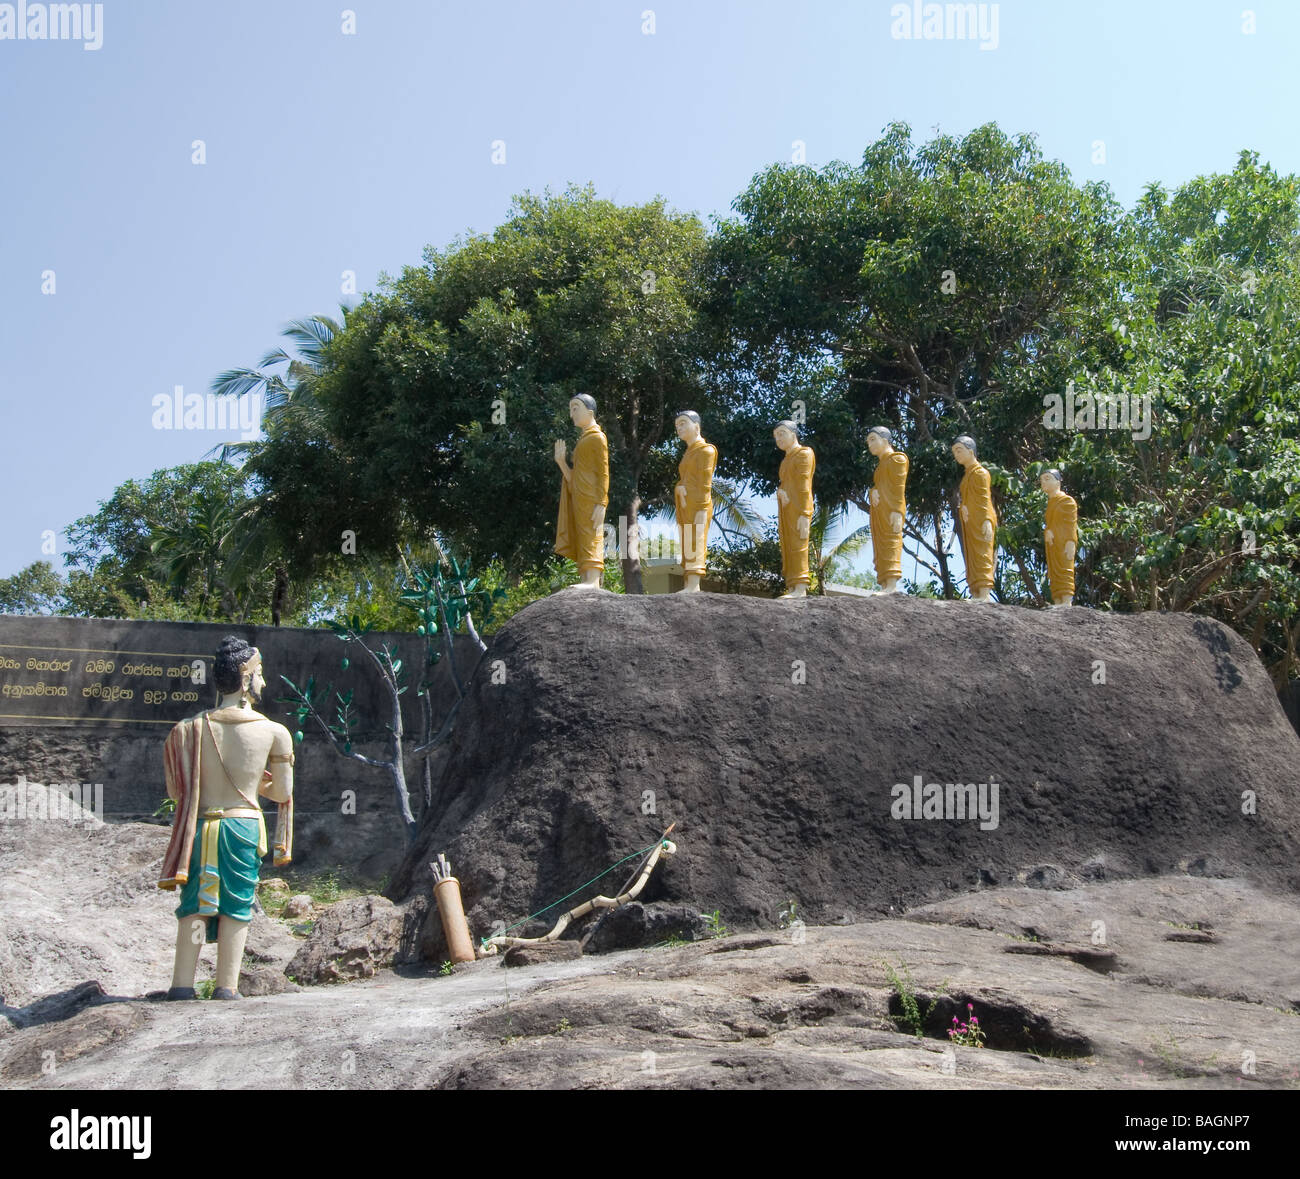 Scene of Buddhism in Sri Lanka - Arahat Mahinda brings Buddism to King Devanampiyatissa of Sri Lanka. - Stock Image